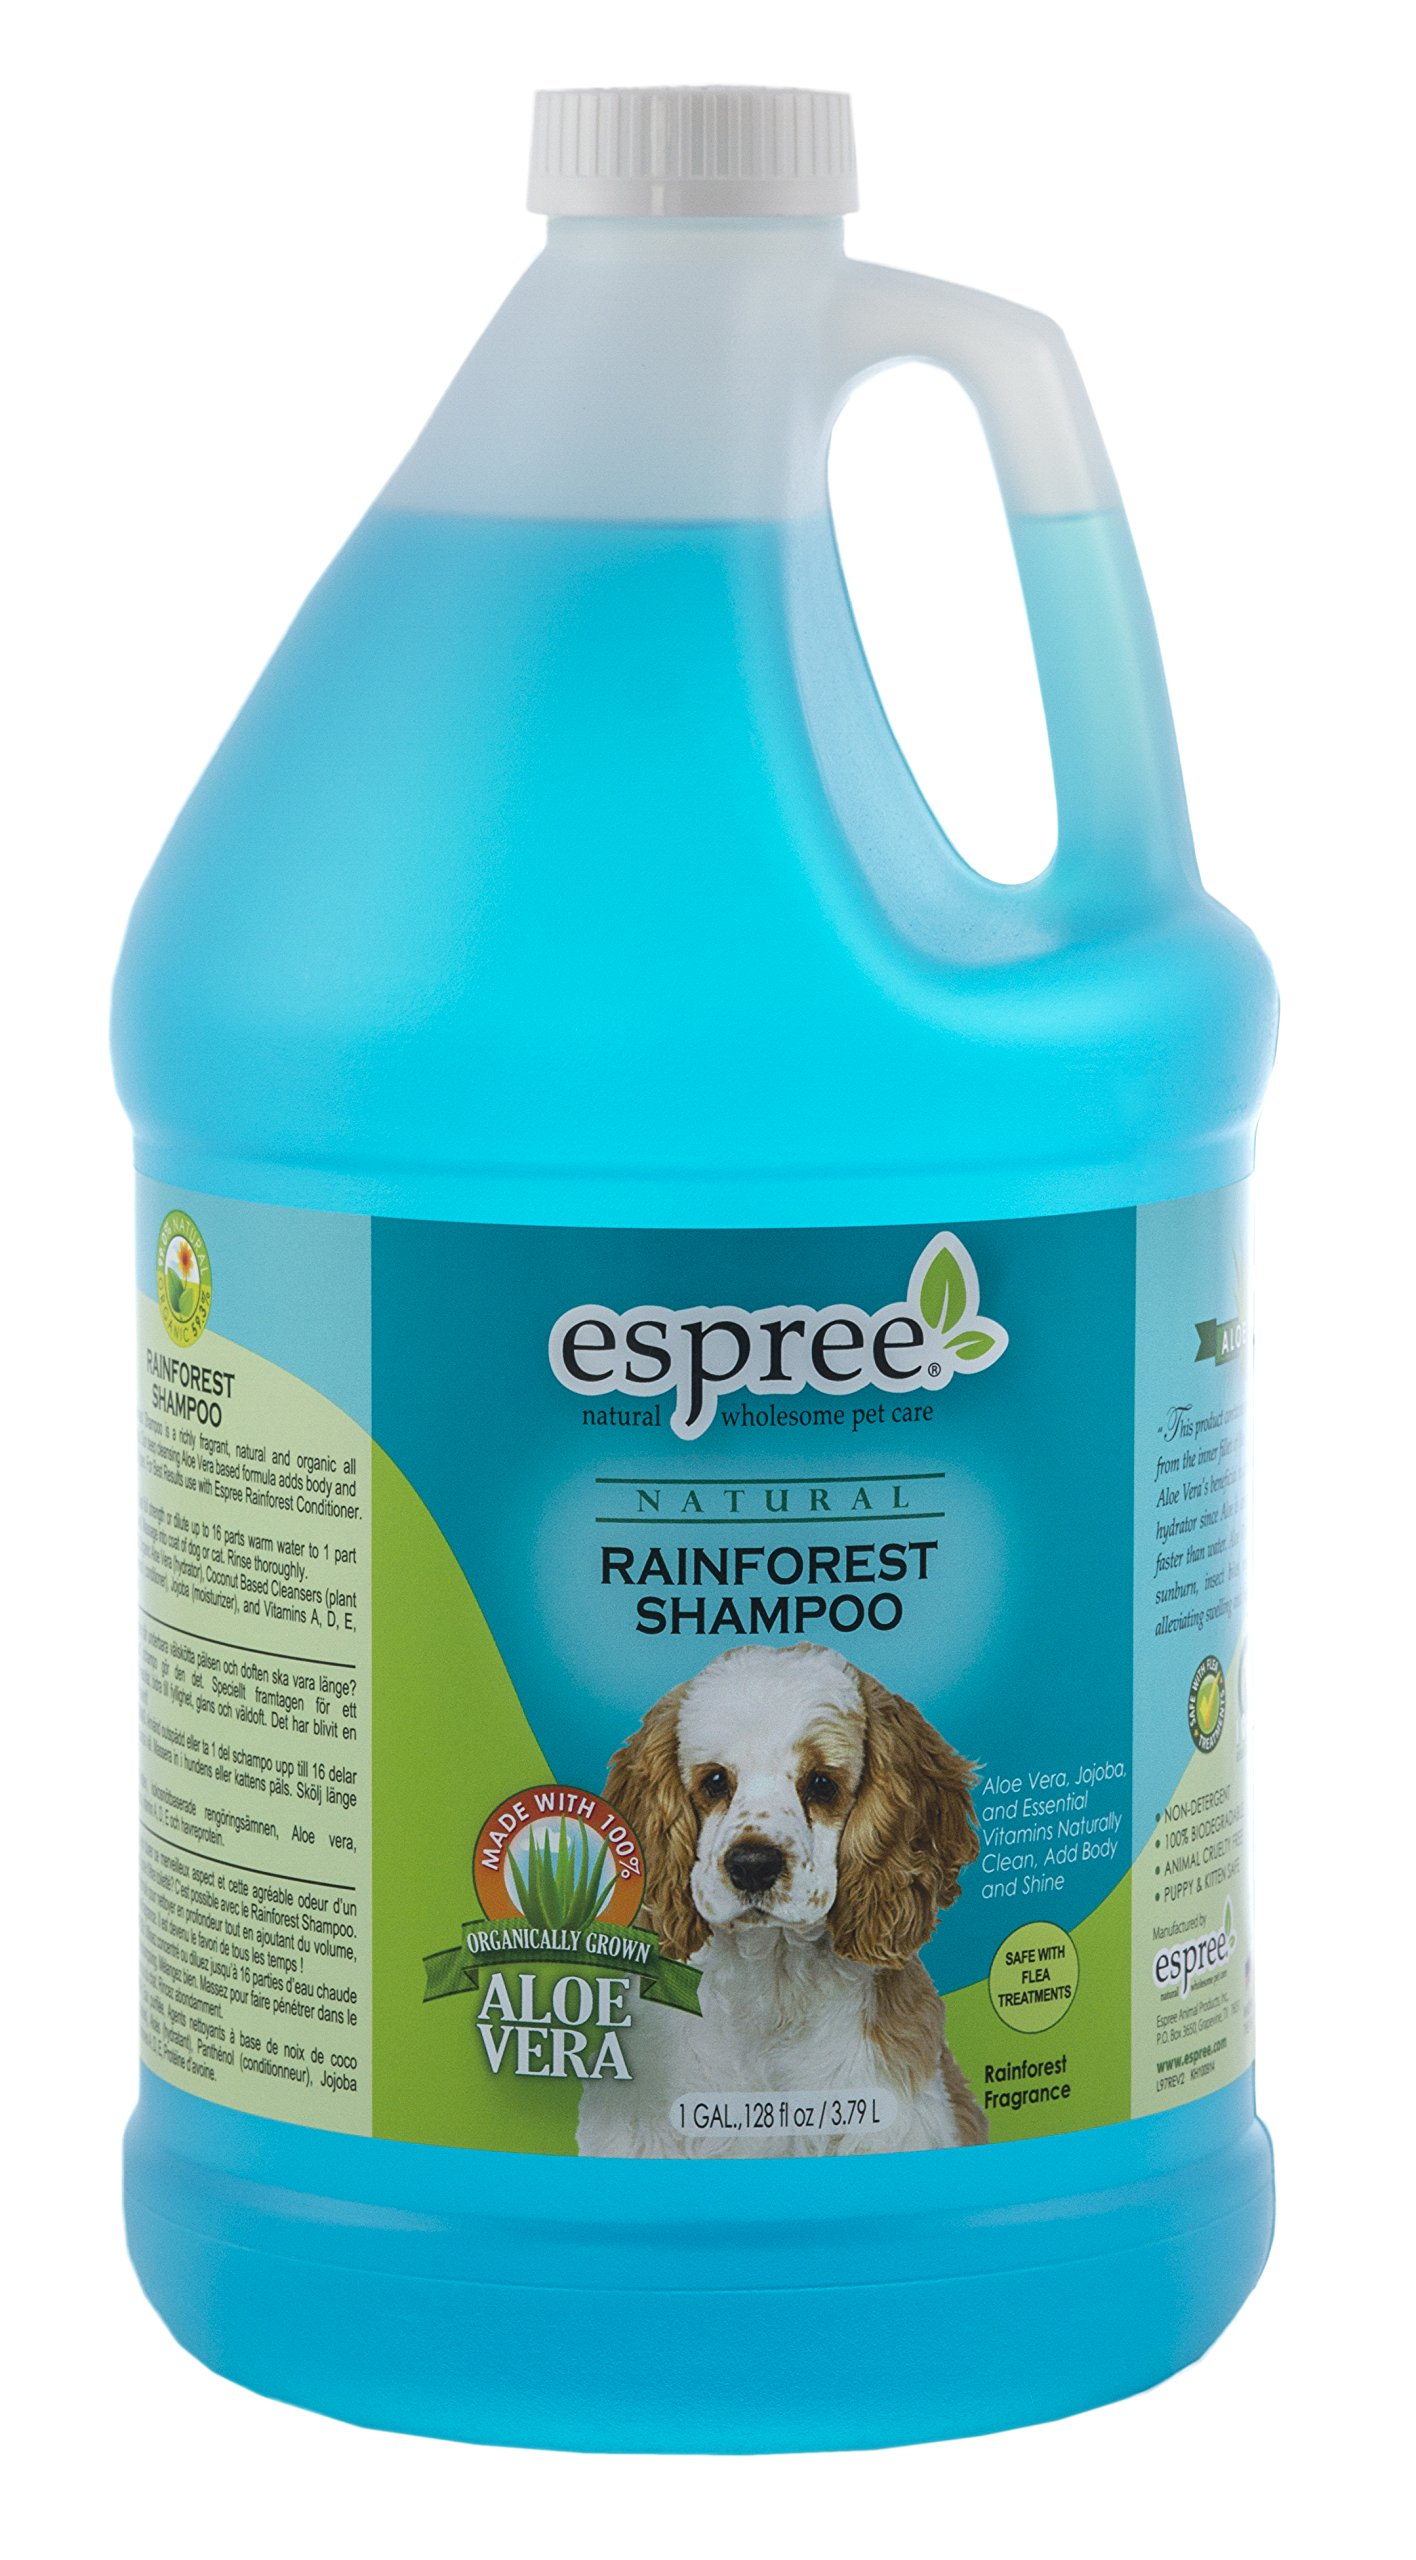 Espree Rainforest Shampoo, 1 gallon by Espree